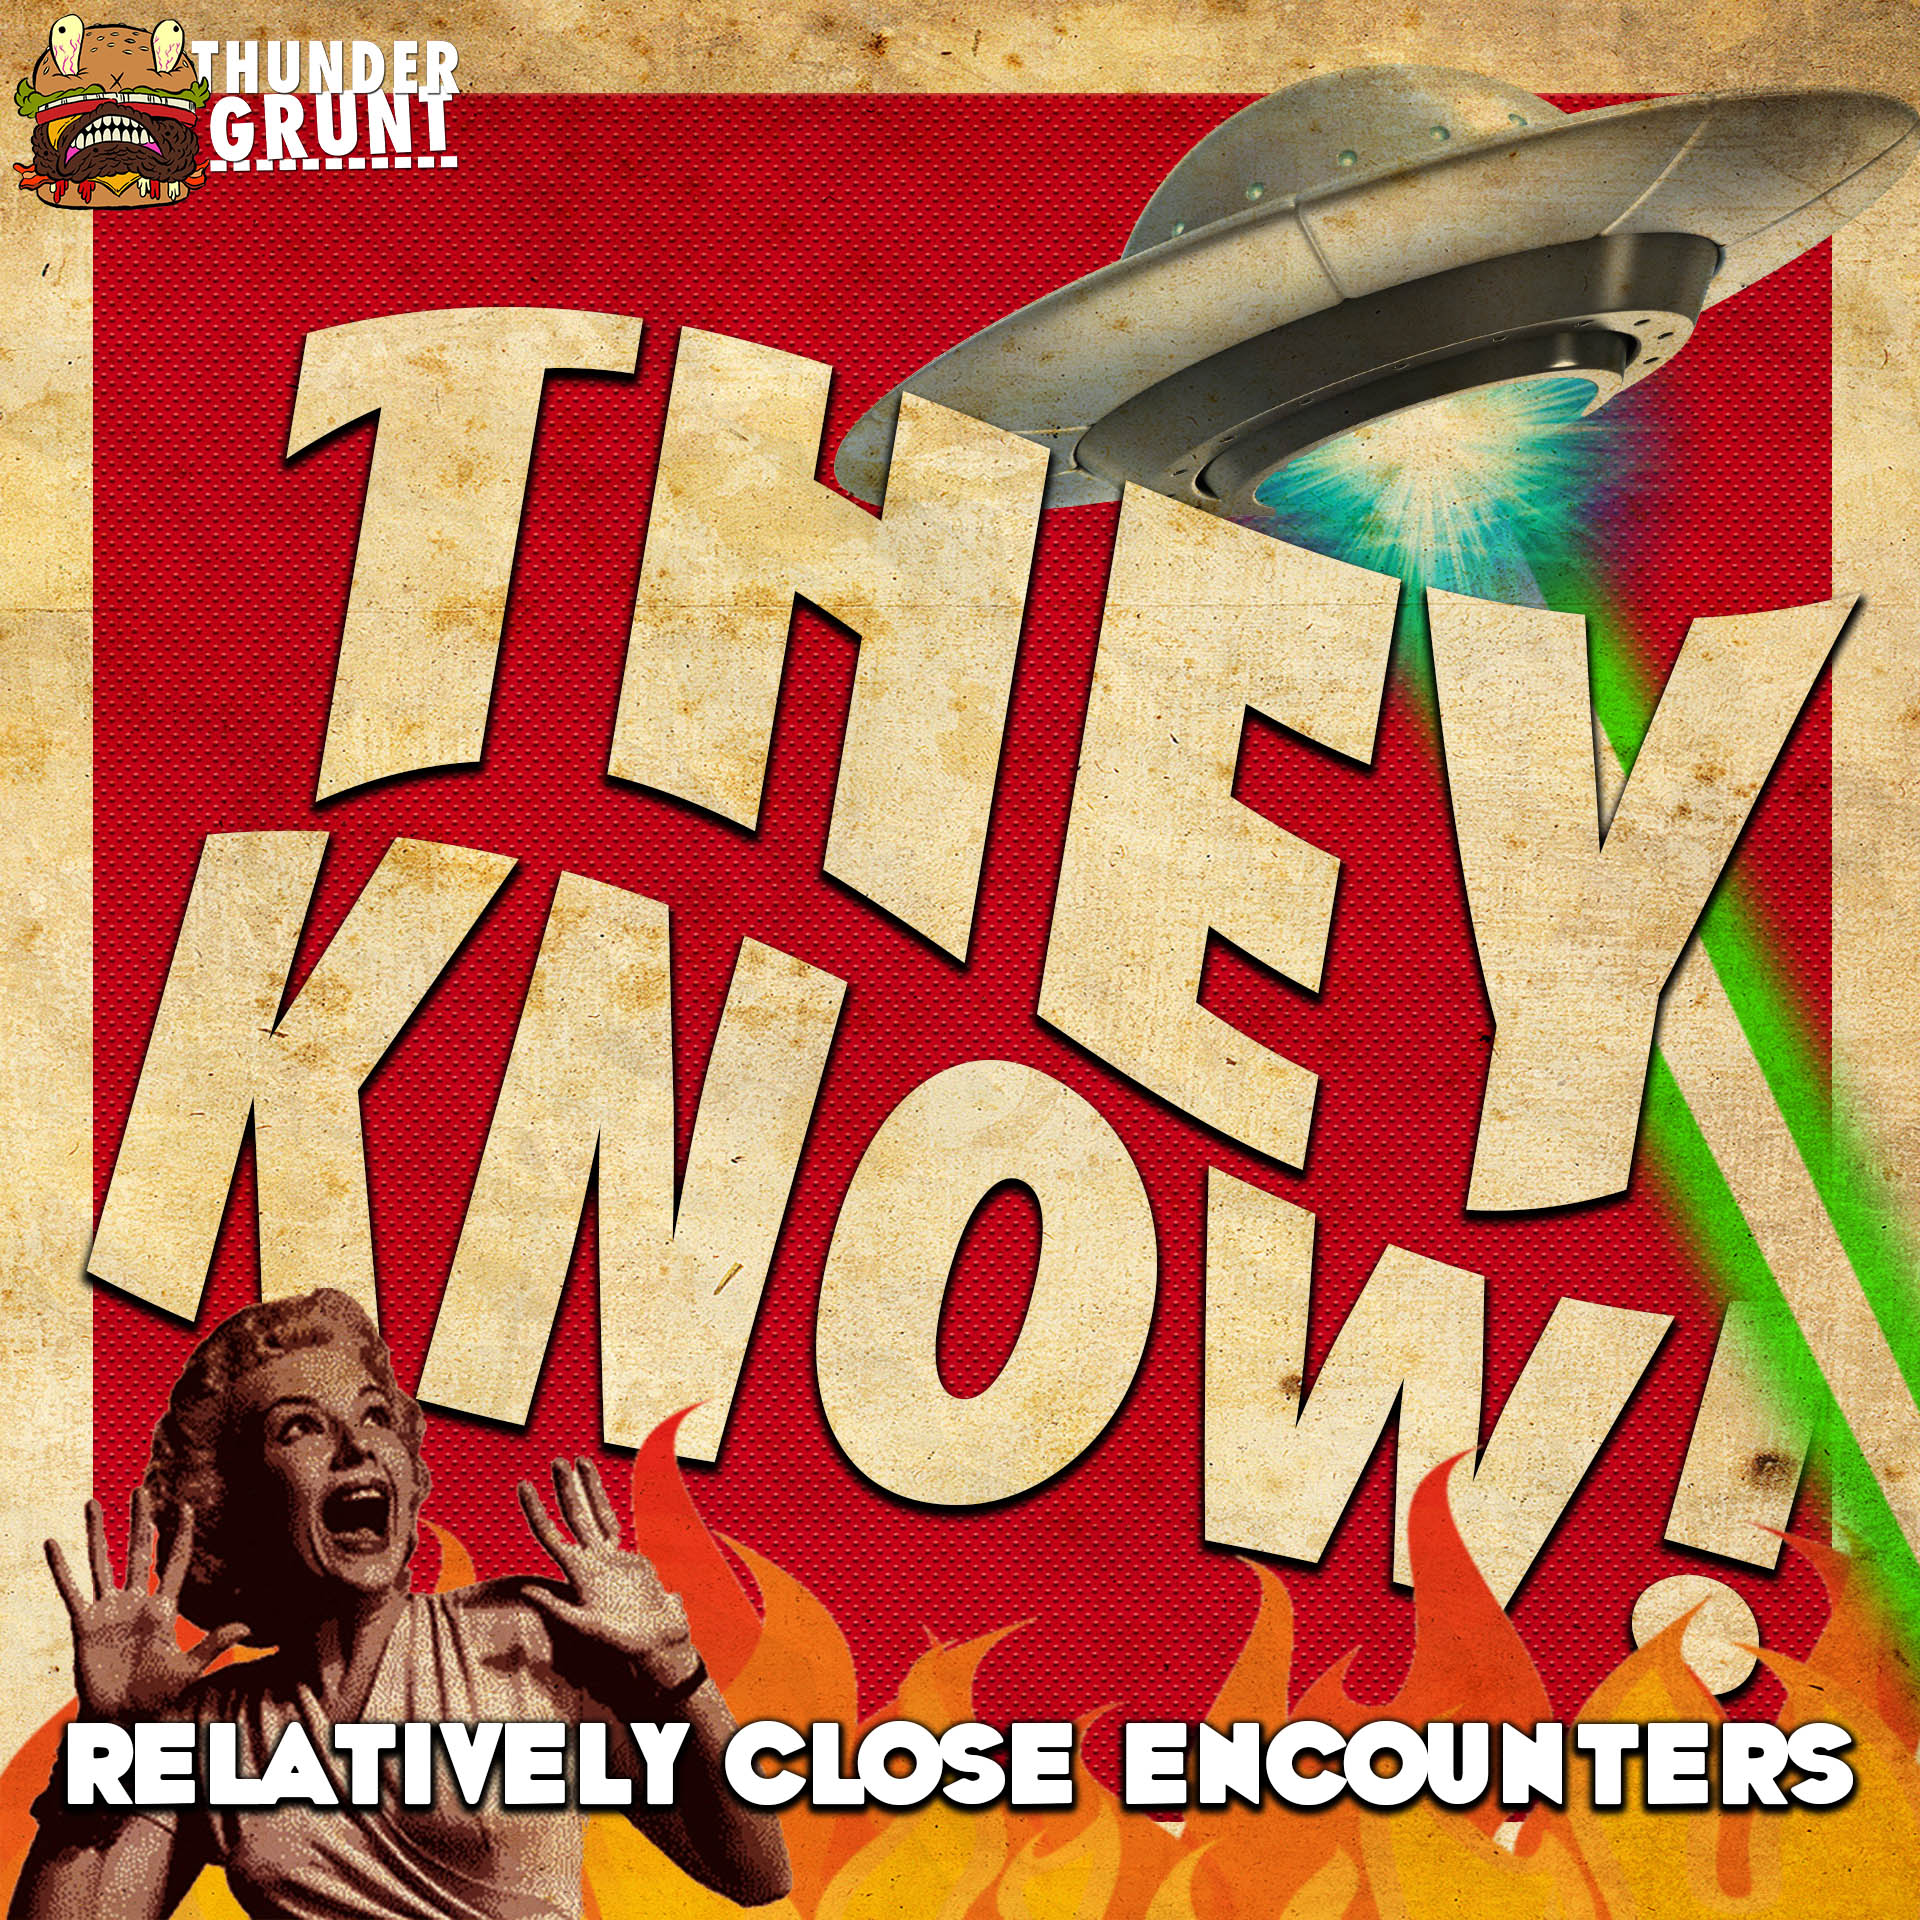 THEY KNOW! 012 | RELATIVELY CLOSE ENCOUNTERS